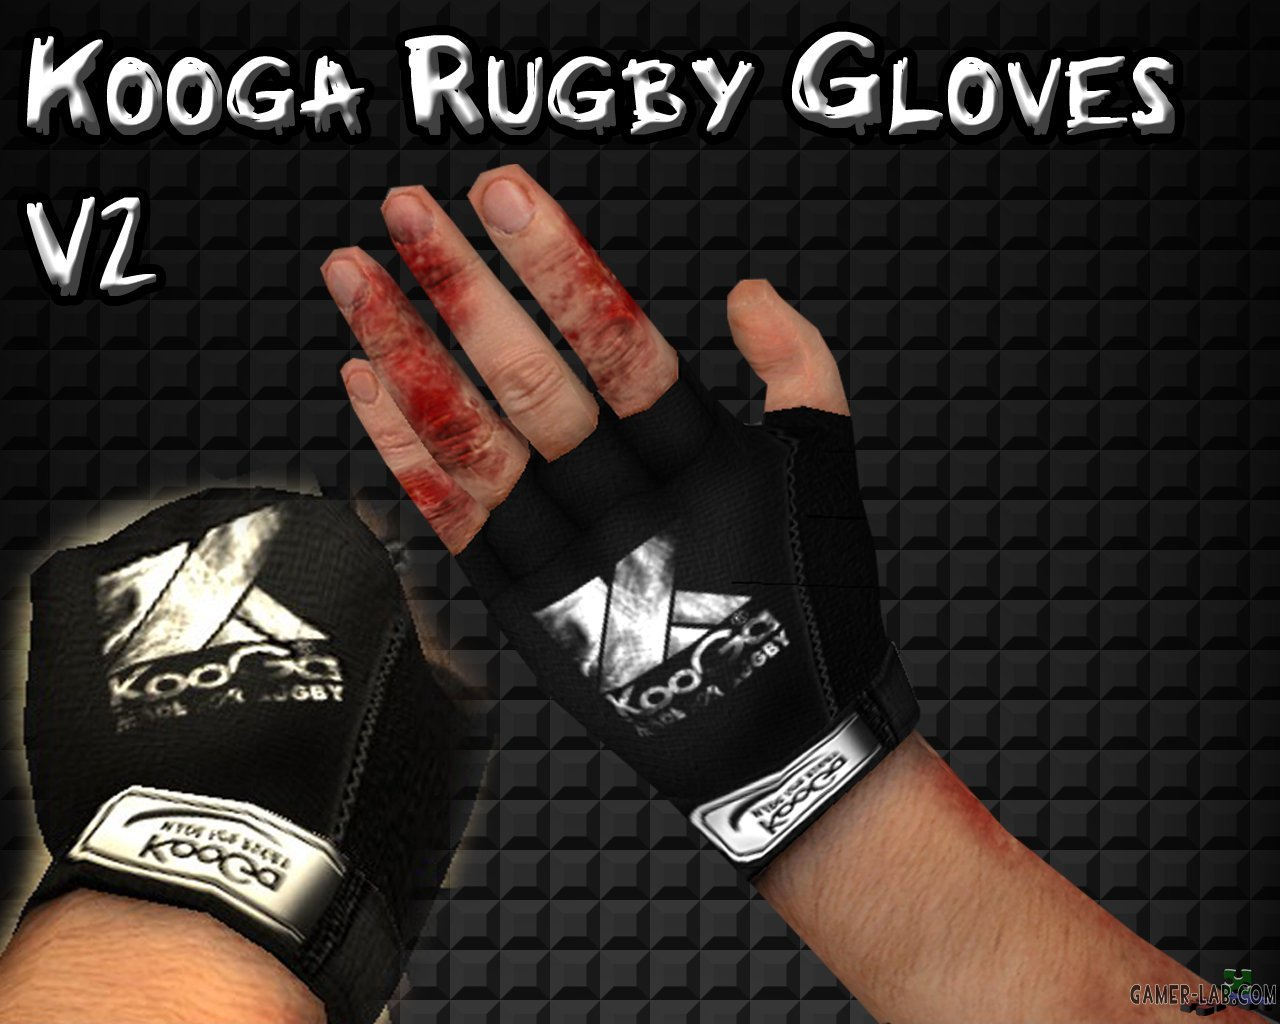 Kooga_Rugby_Gloves_V2